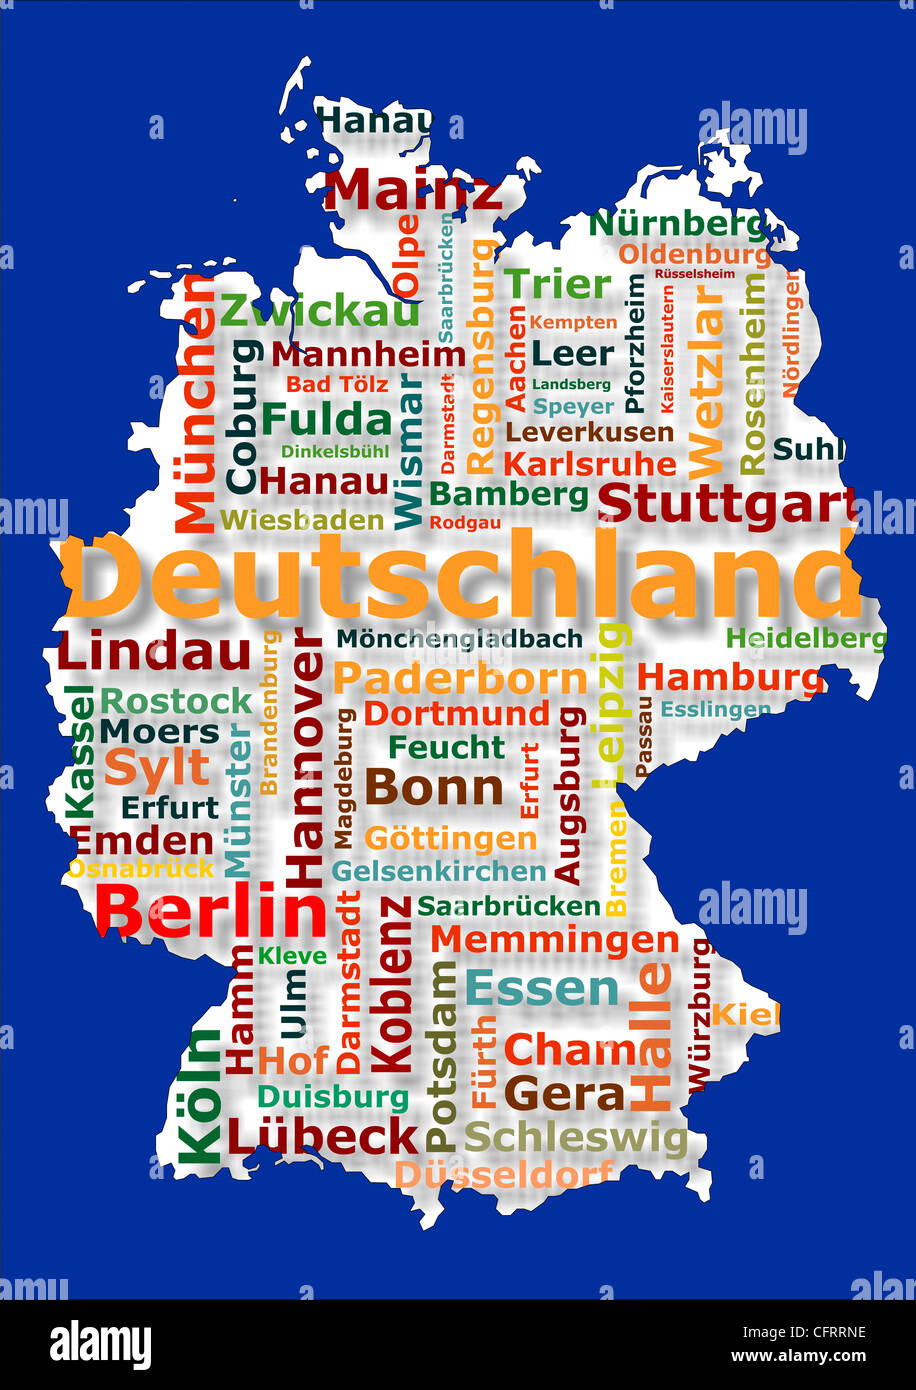 Lindau Germany Map.Map Of Germany With The Names Of Big German Cities Stock Photo